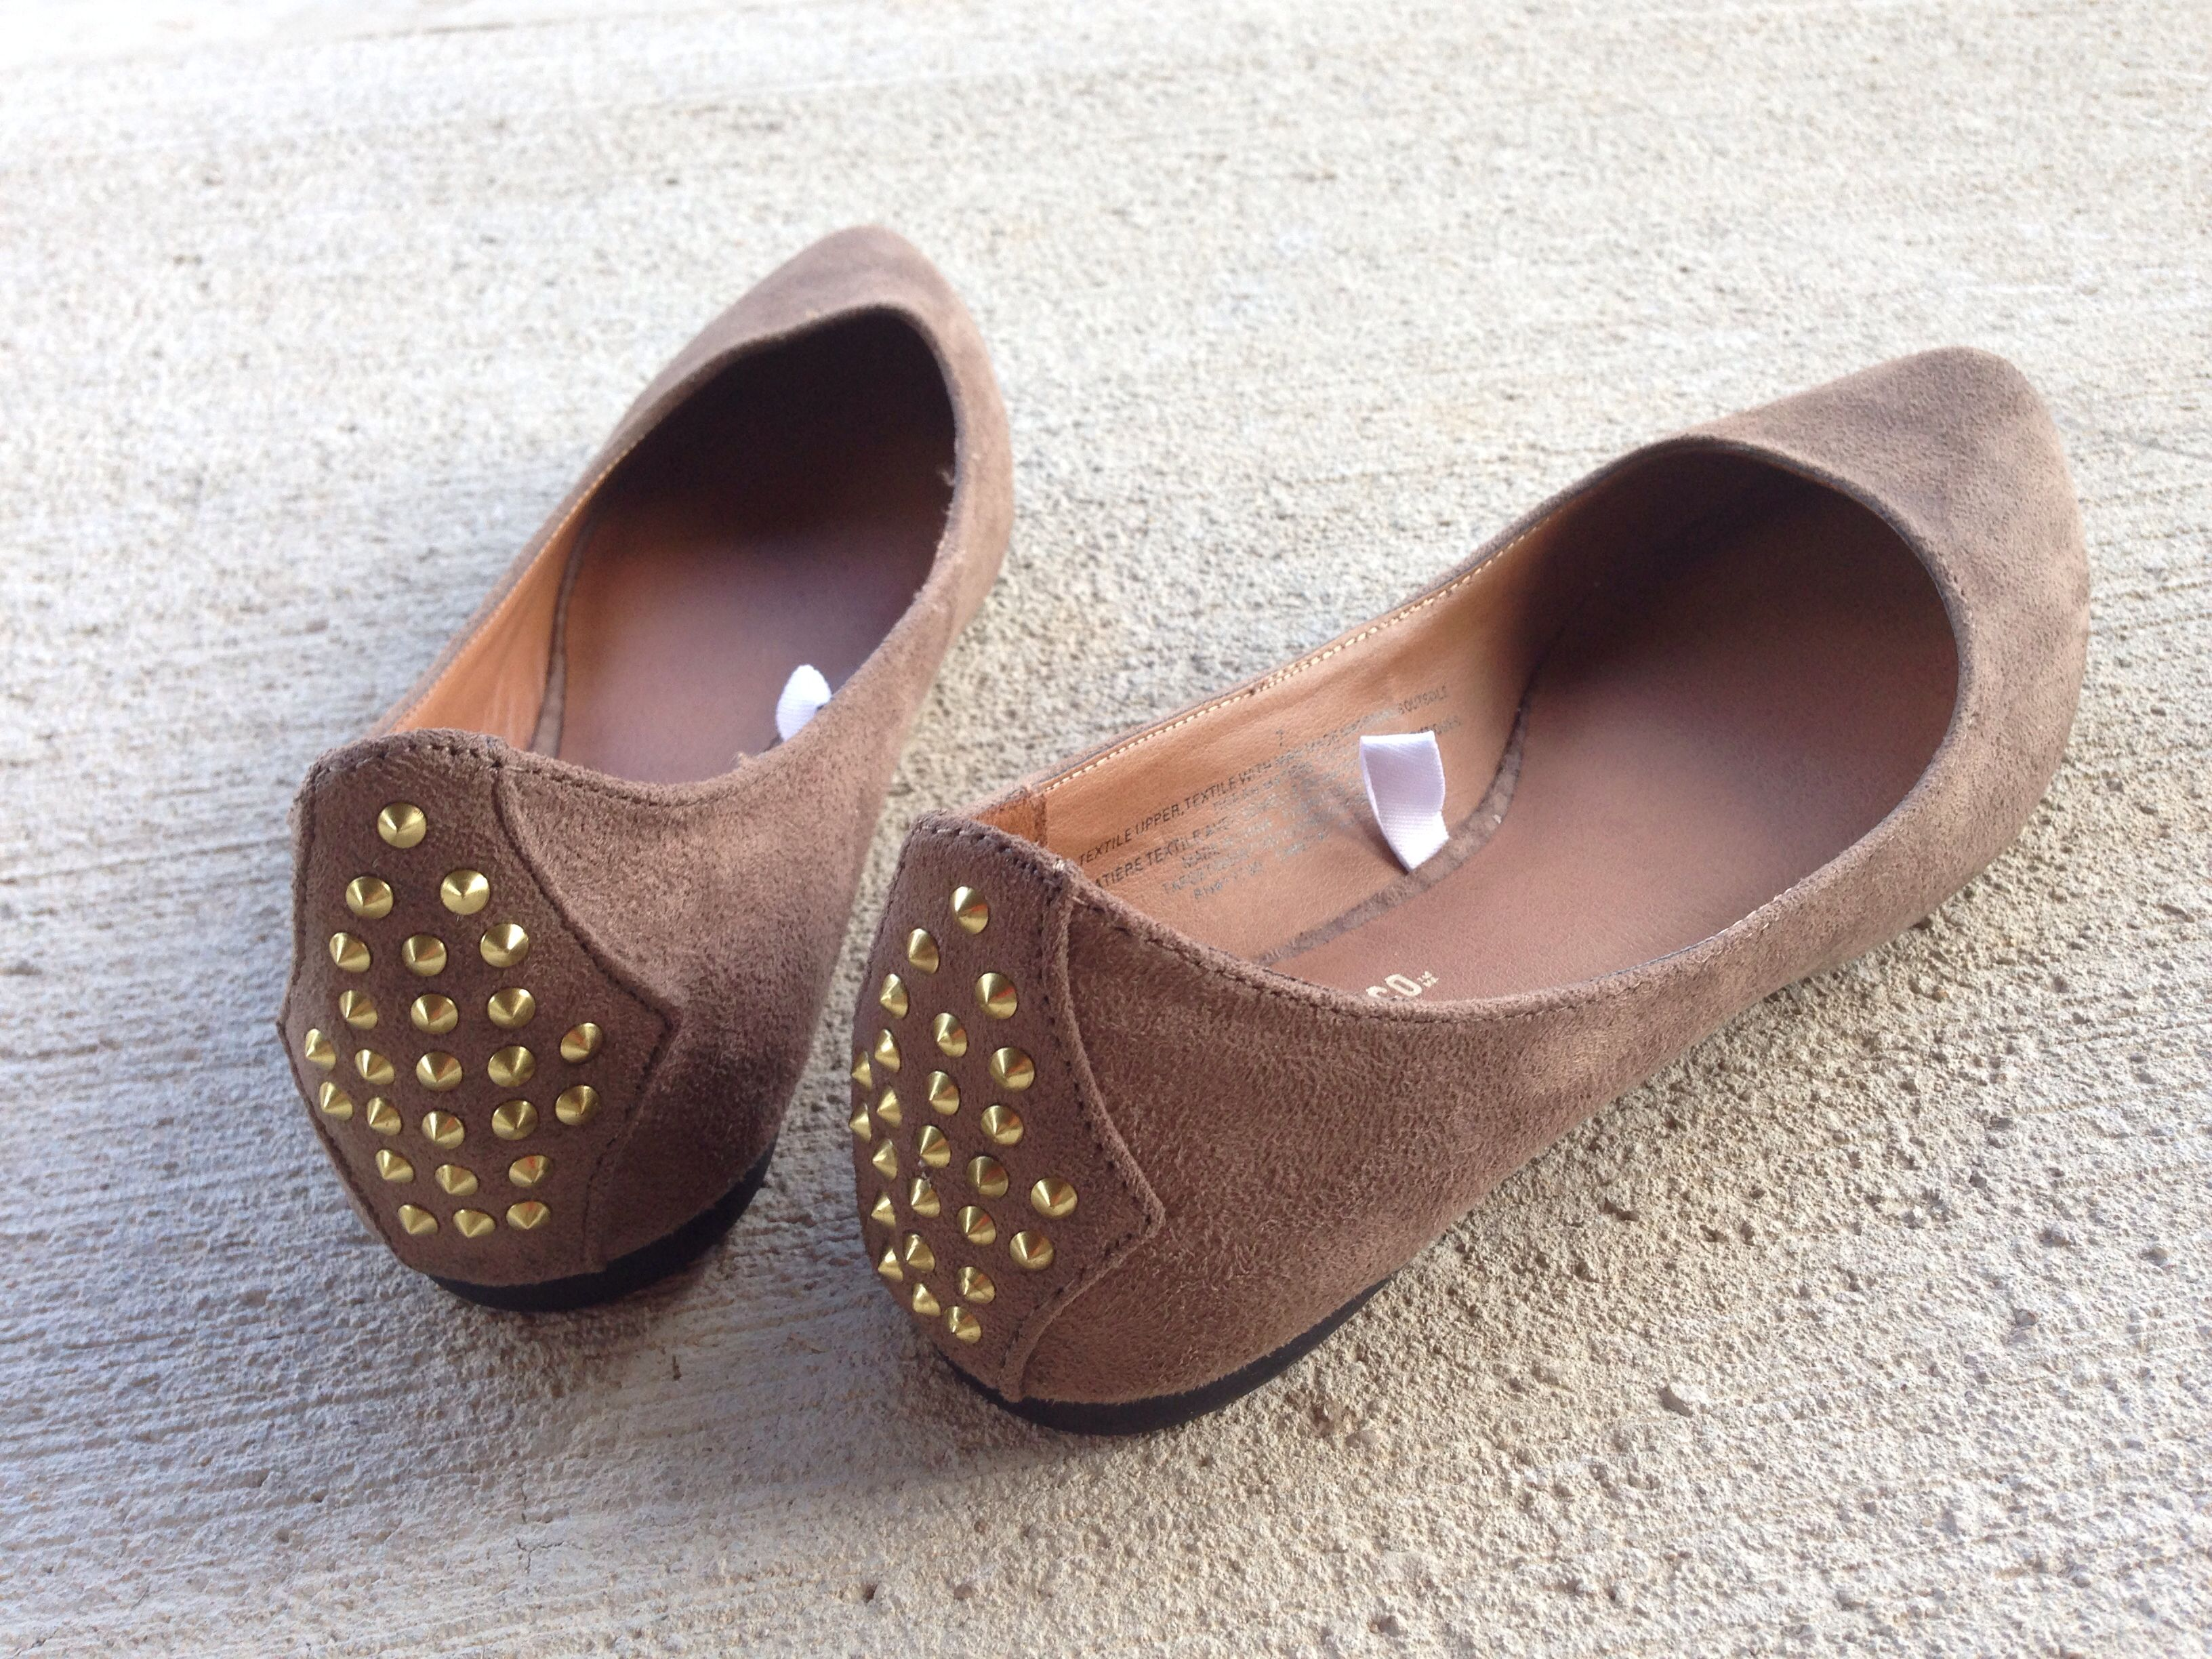 Spiked flats. Photo by ThePixie